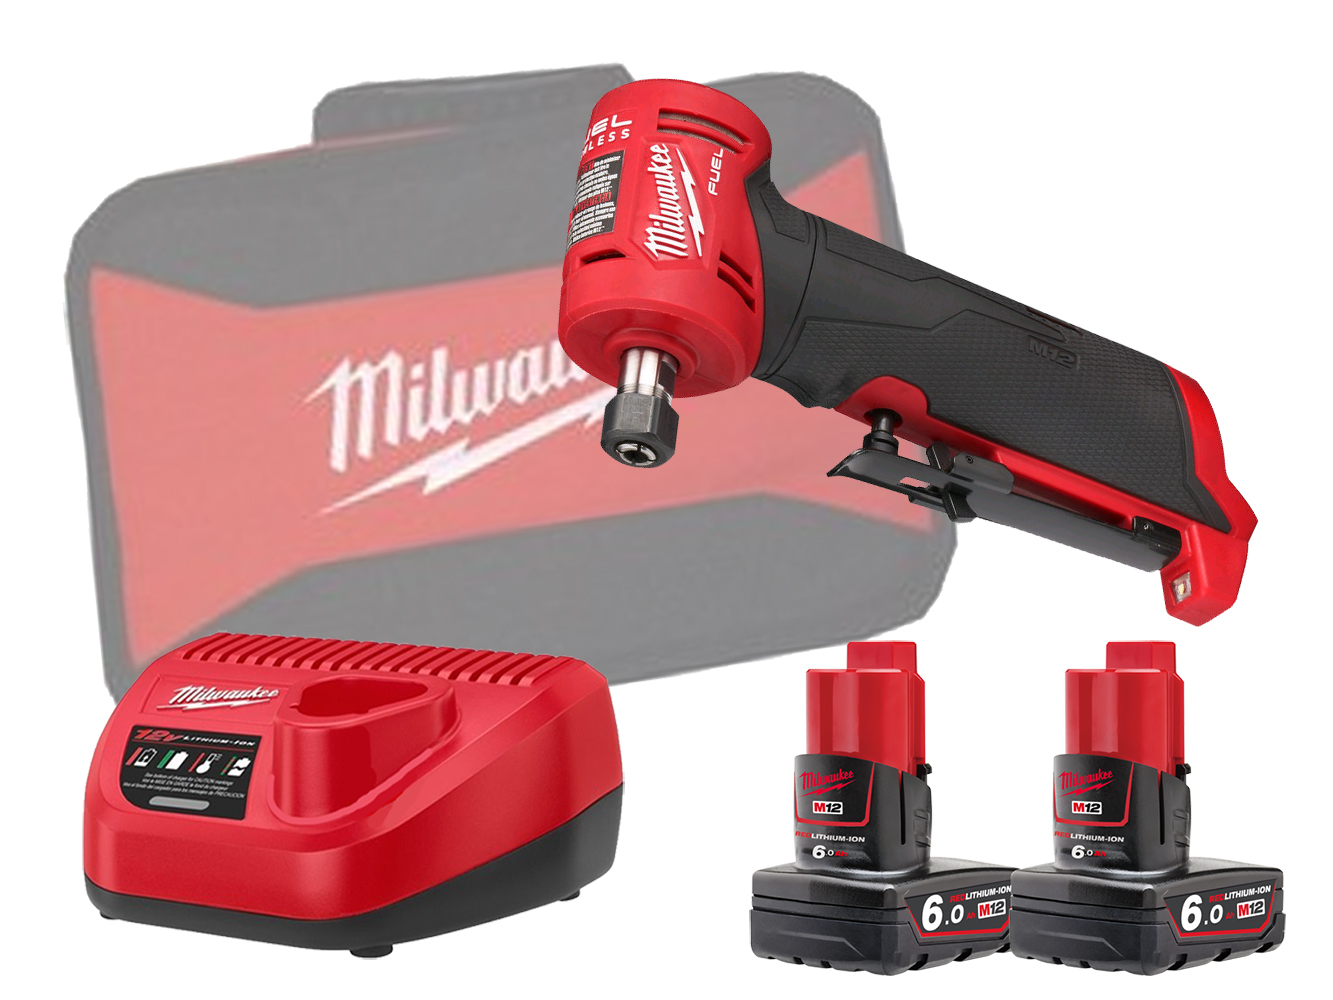 Milwaukee M12FDGA 12V Fuel Brushless Angled Die Grinder - 6.0Ah Pack